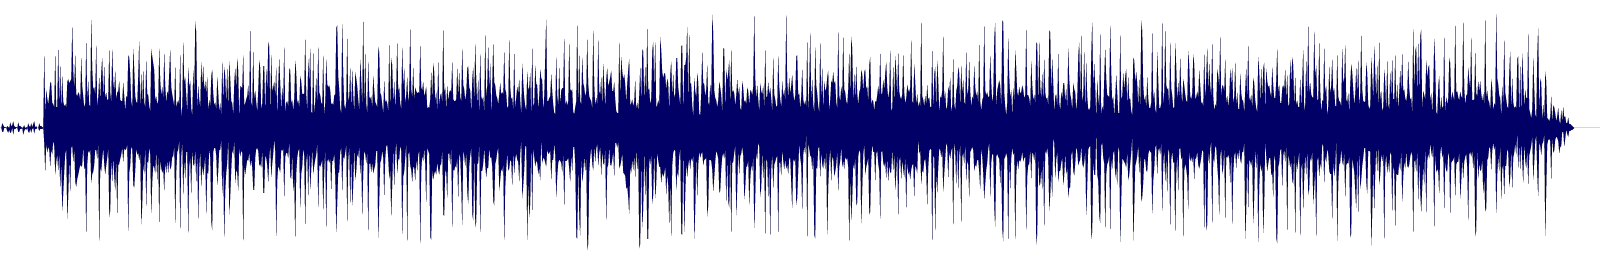 waveform of track #113855